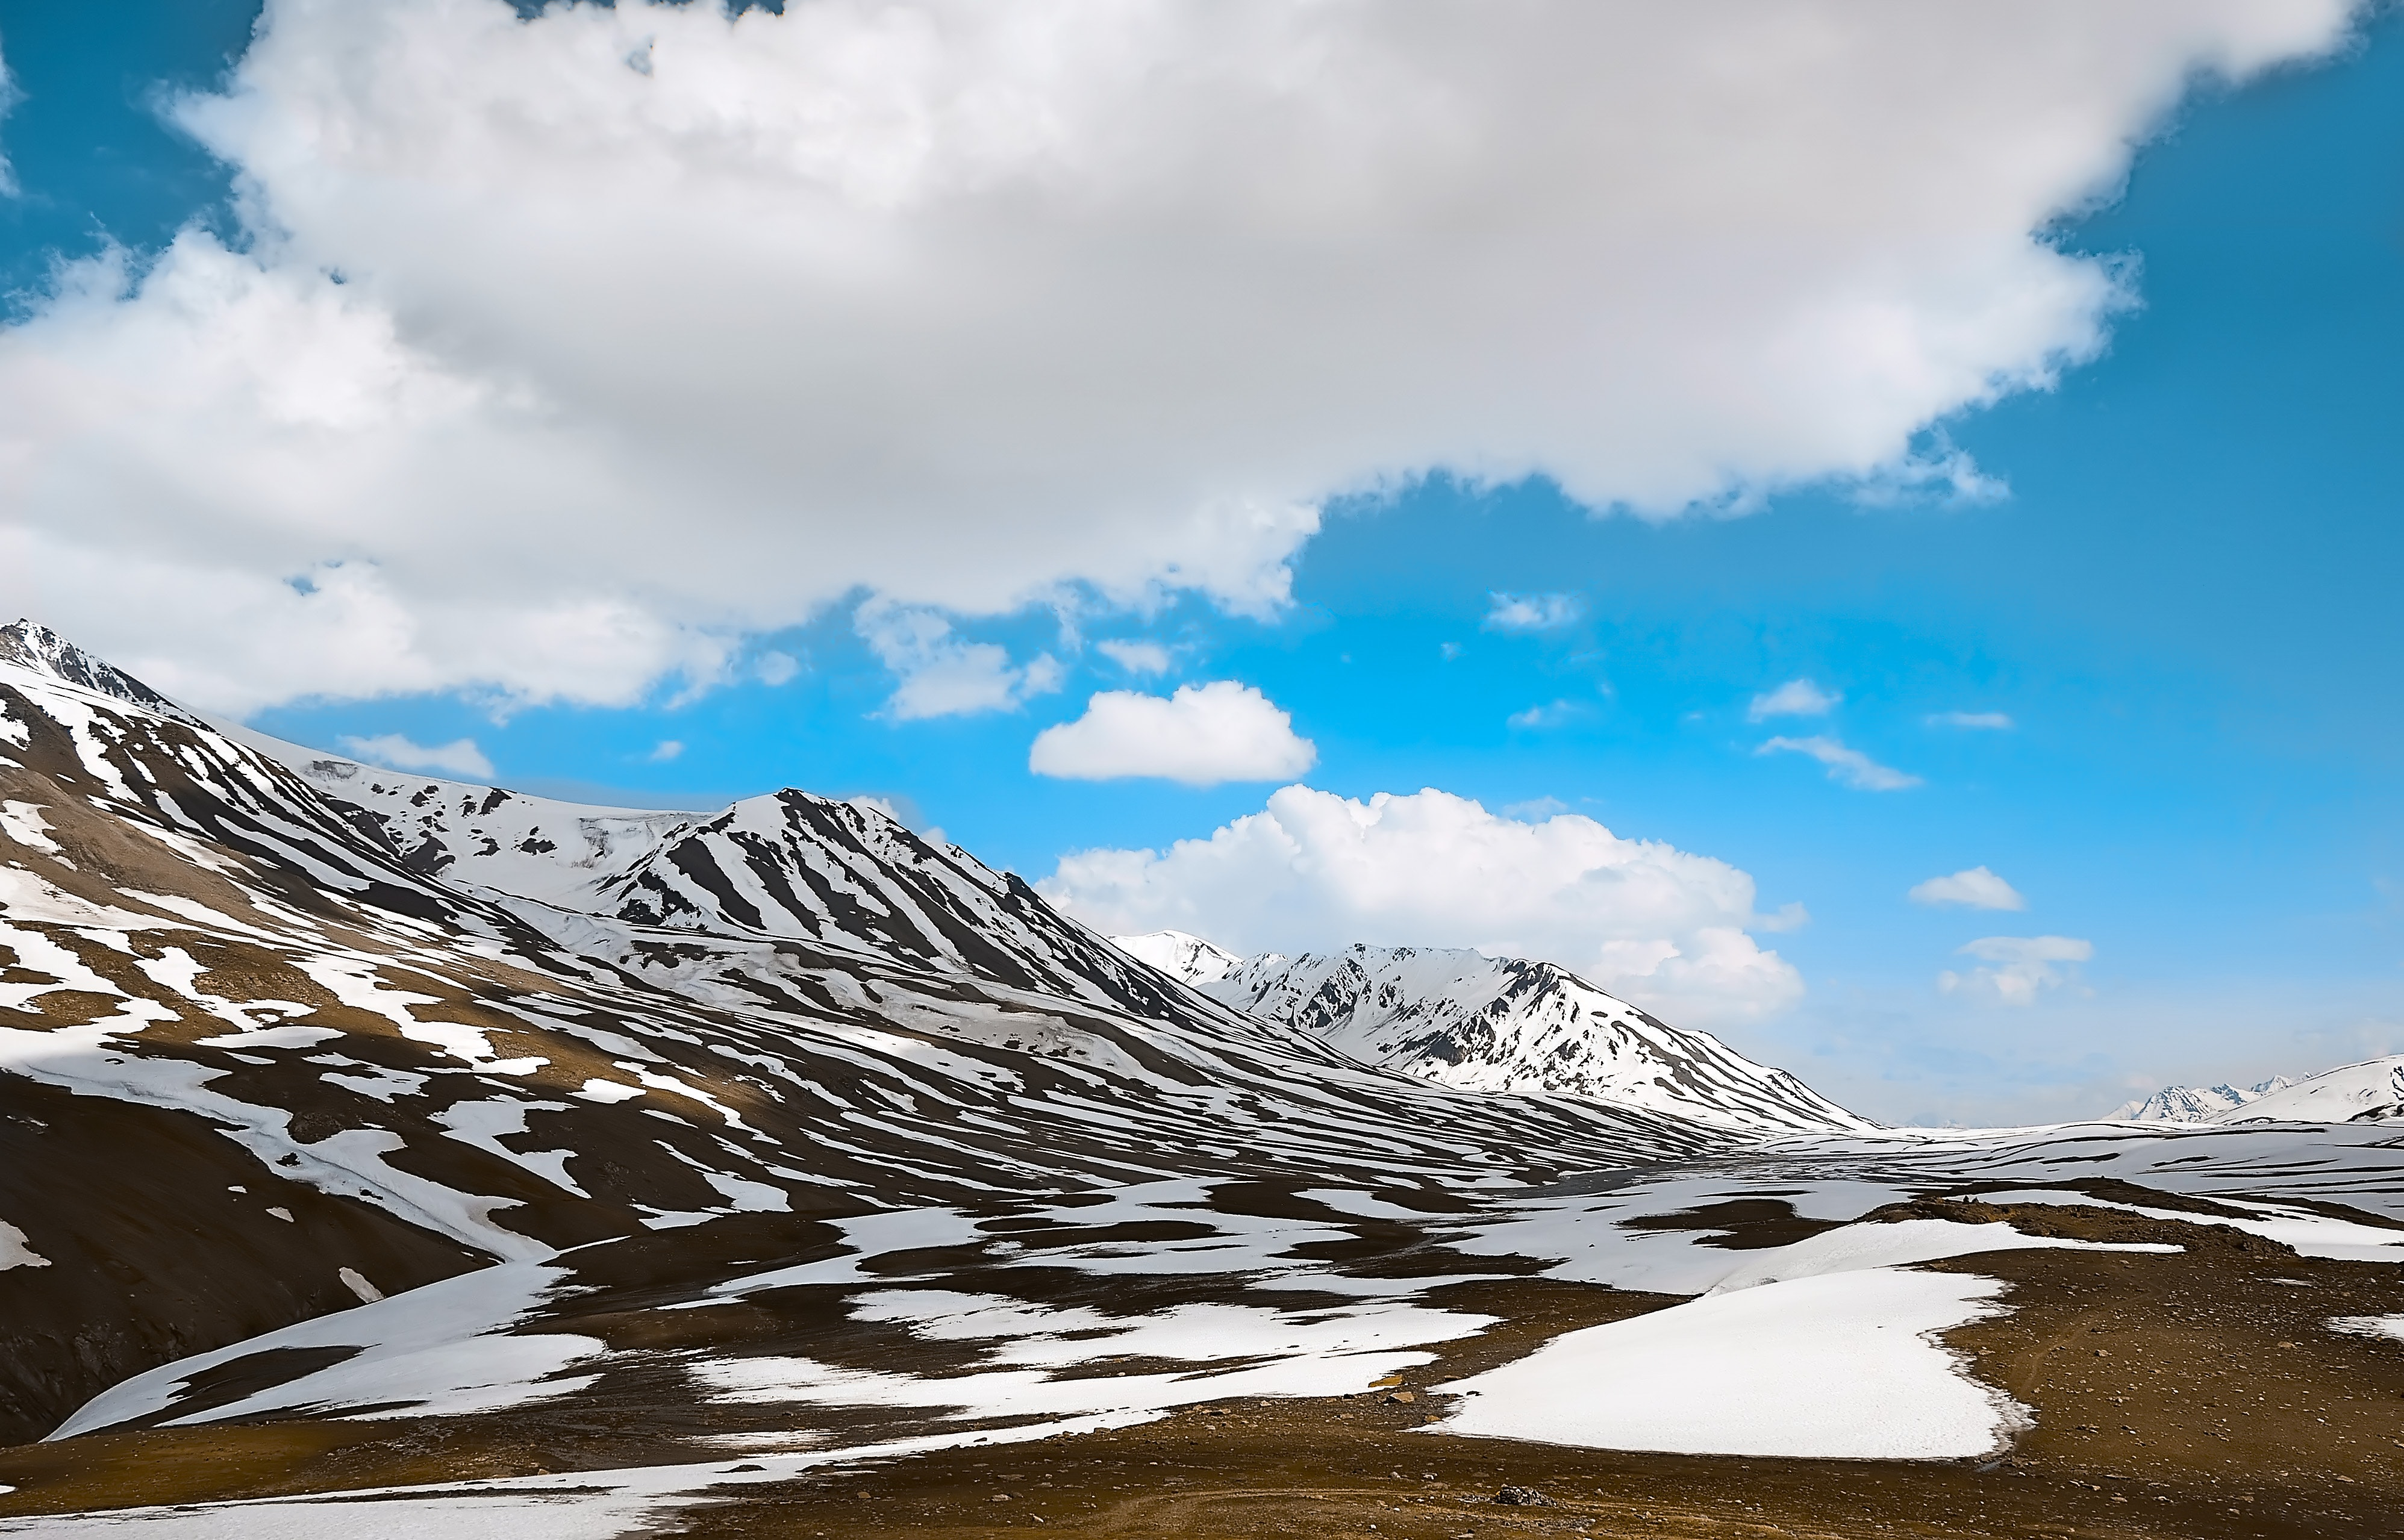 Worm's eye view photography of alps mountains